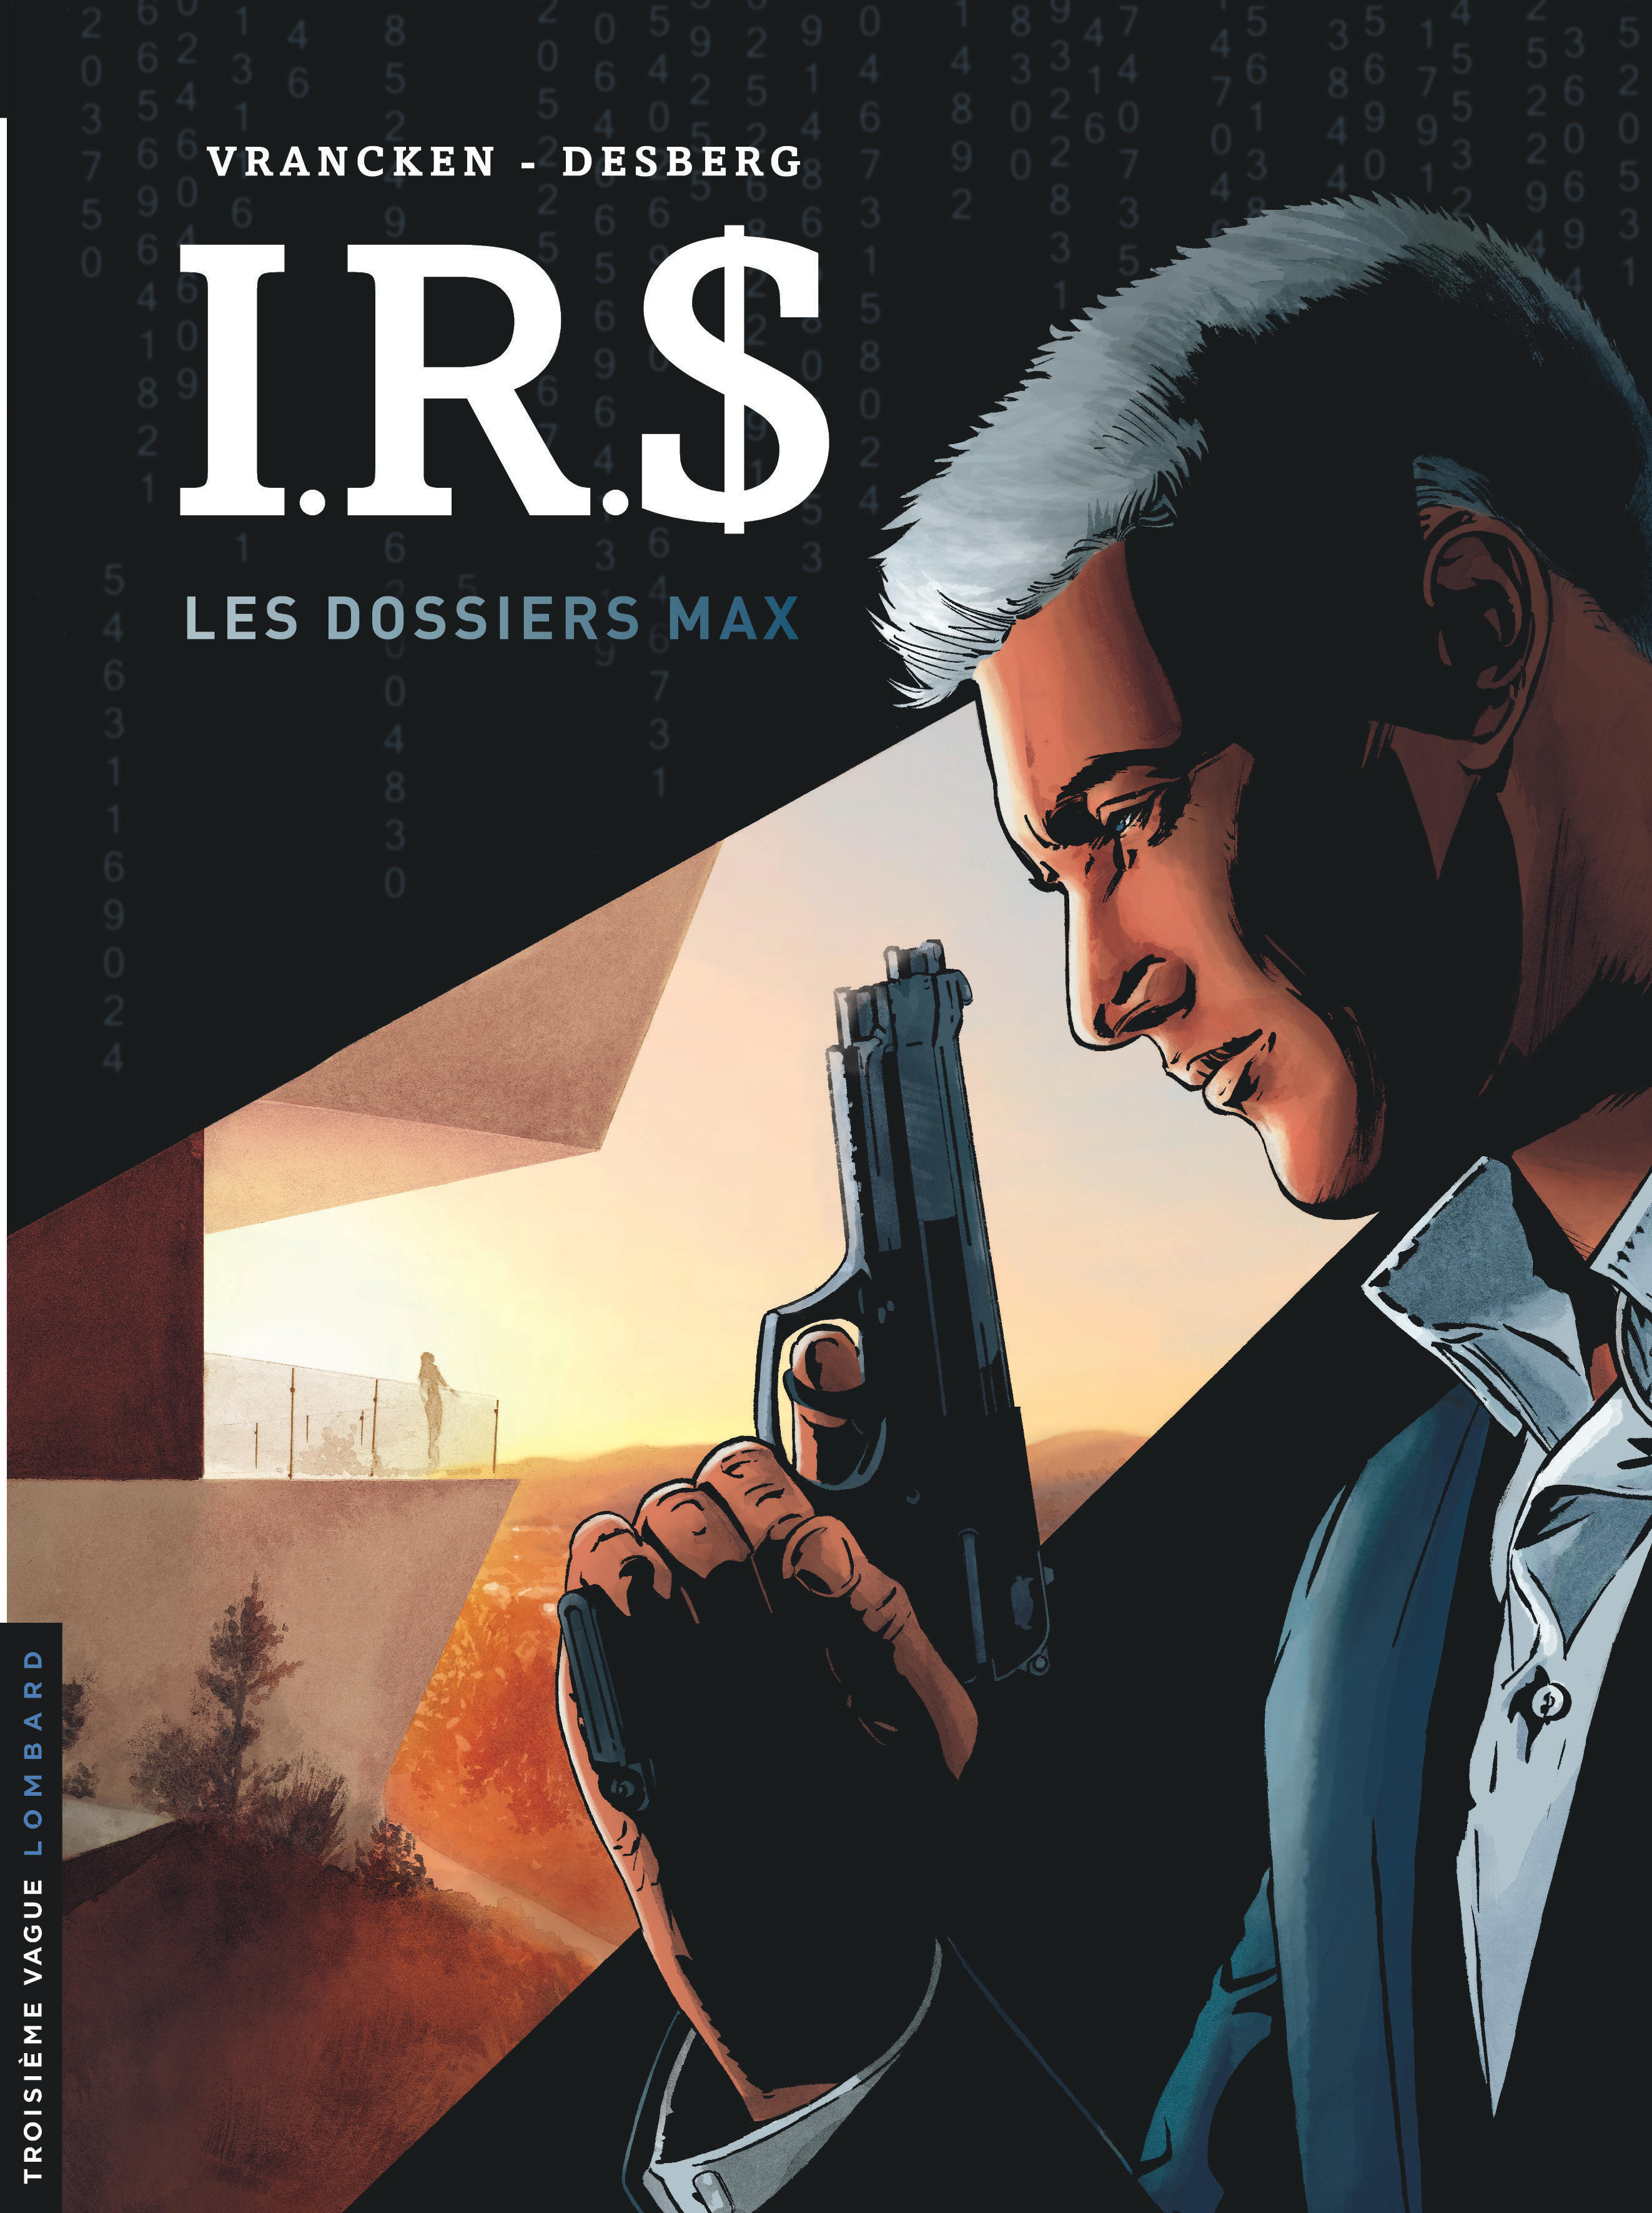 IRS - I.R.D - TOME 0 - LES DOSSIERS MAX